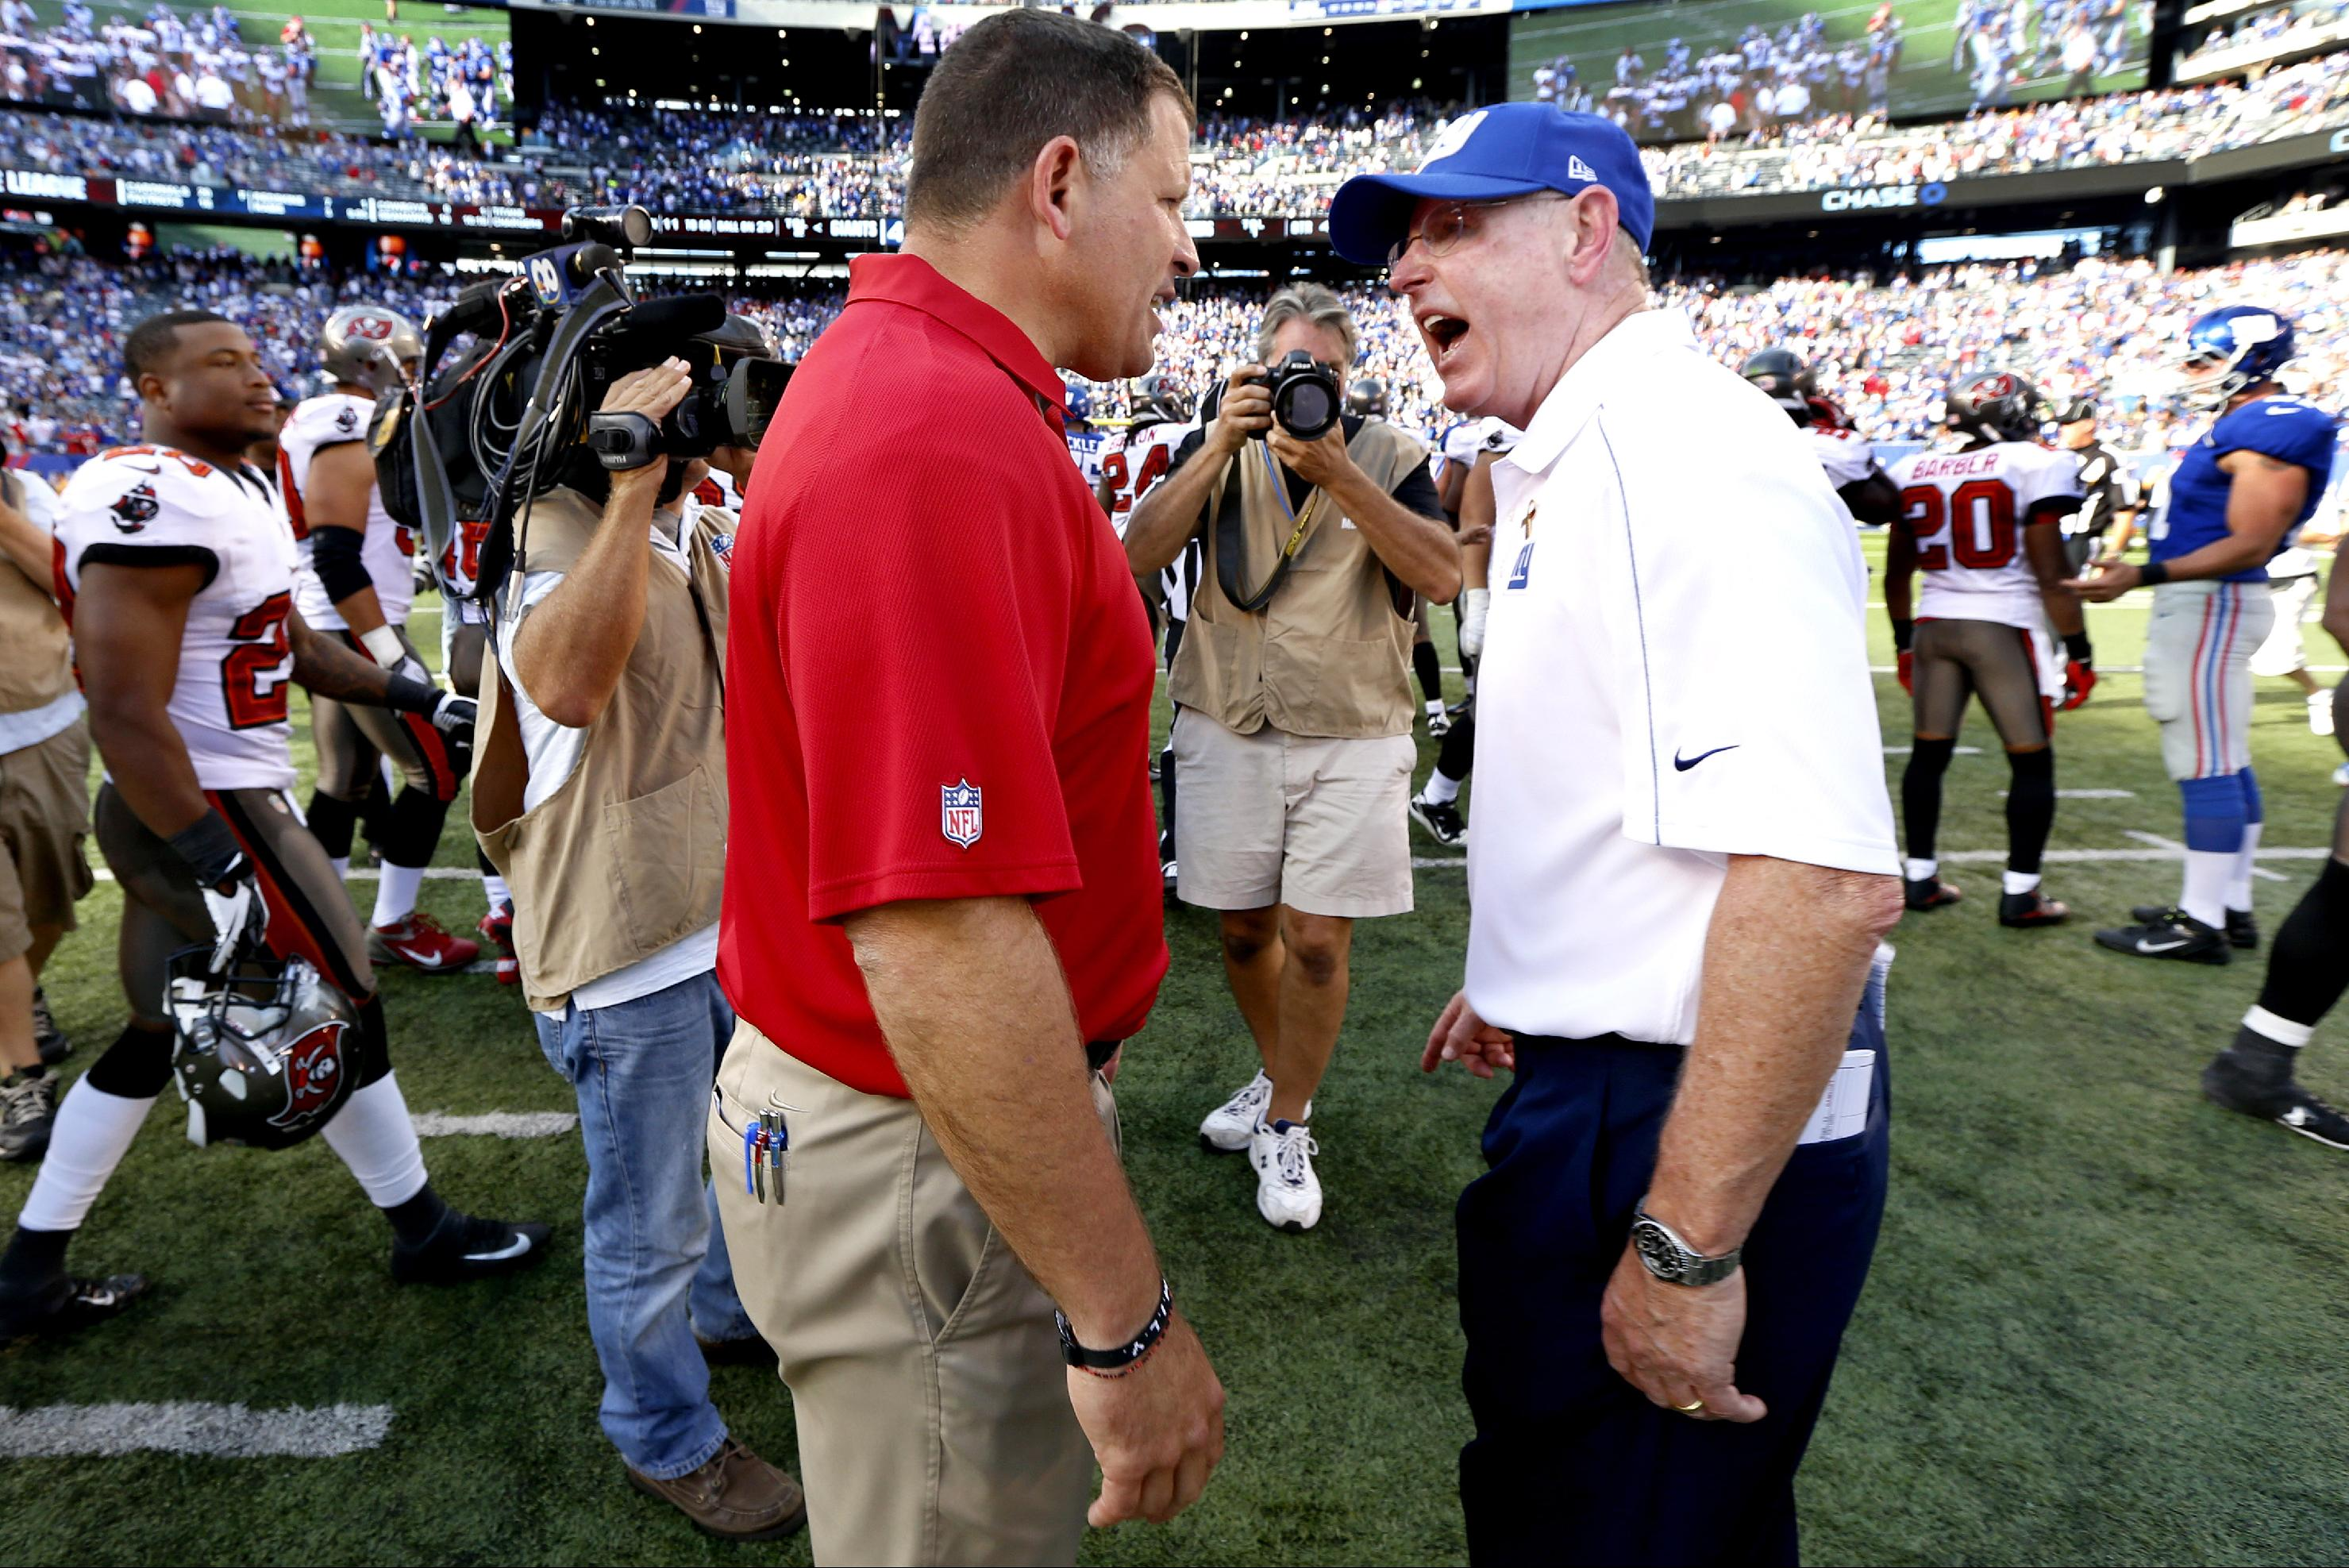 Greg Schiano, left, and Tom Coughlin exchange words after Sunday's Bucs-Giants game. (AP)